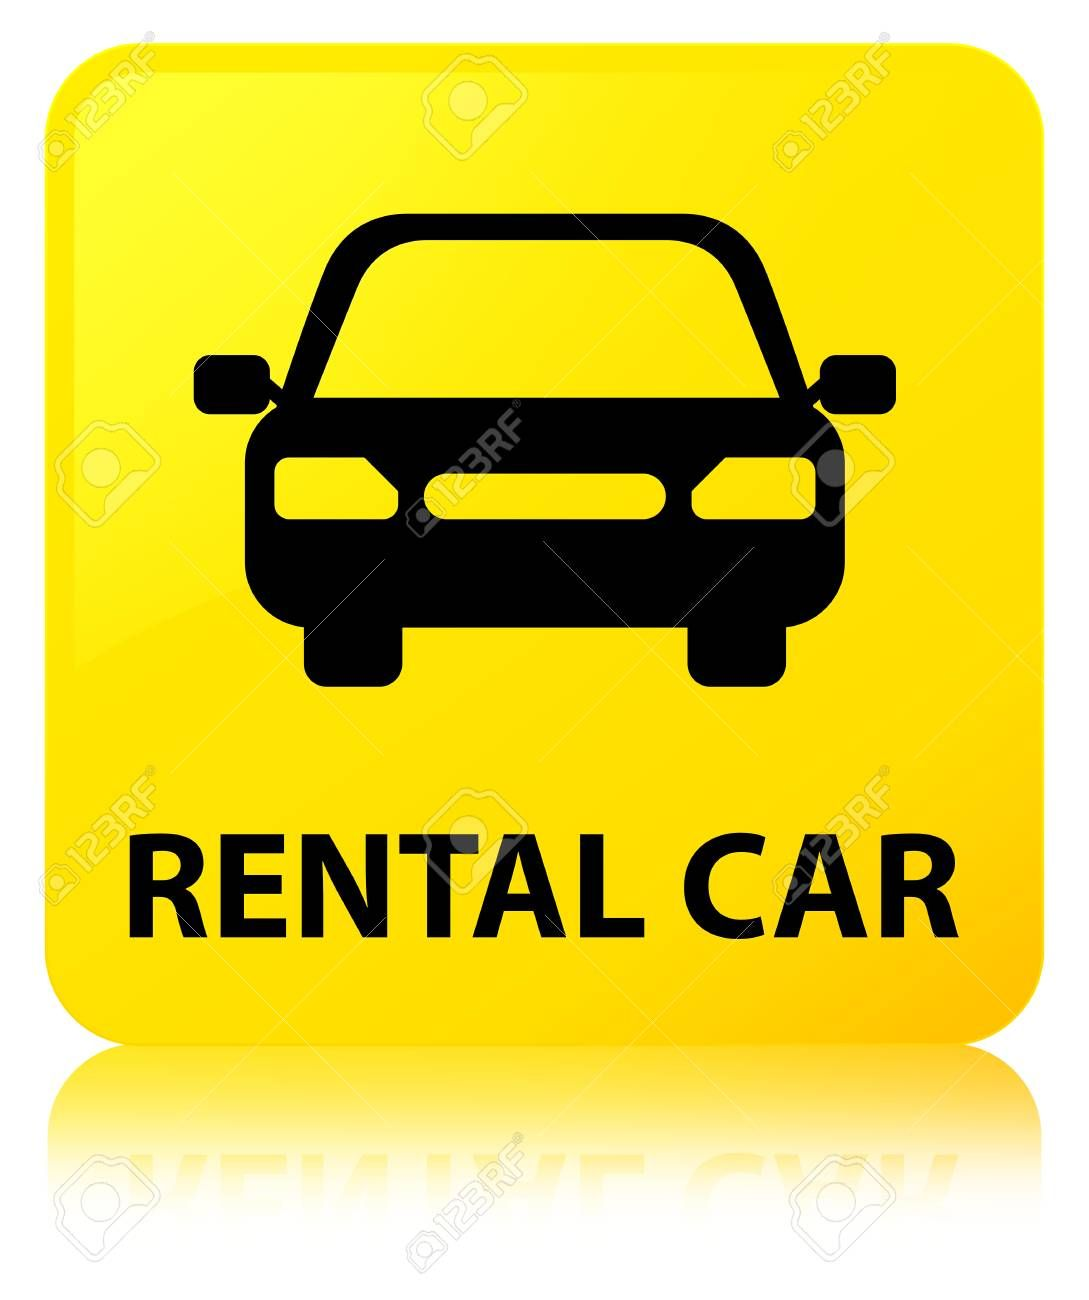 Download Rental Car Isolated On Yellow Square Button Reflected Abstract Illustration Stock Photo Sponsored Yellow Square Isolated Renta Car Rental Rental Car PSD Mockup Templates